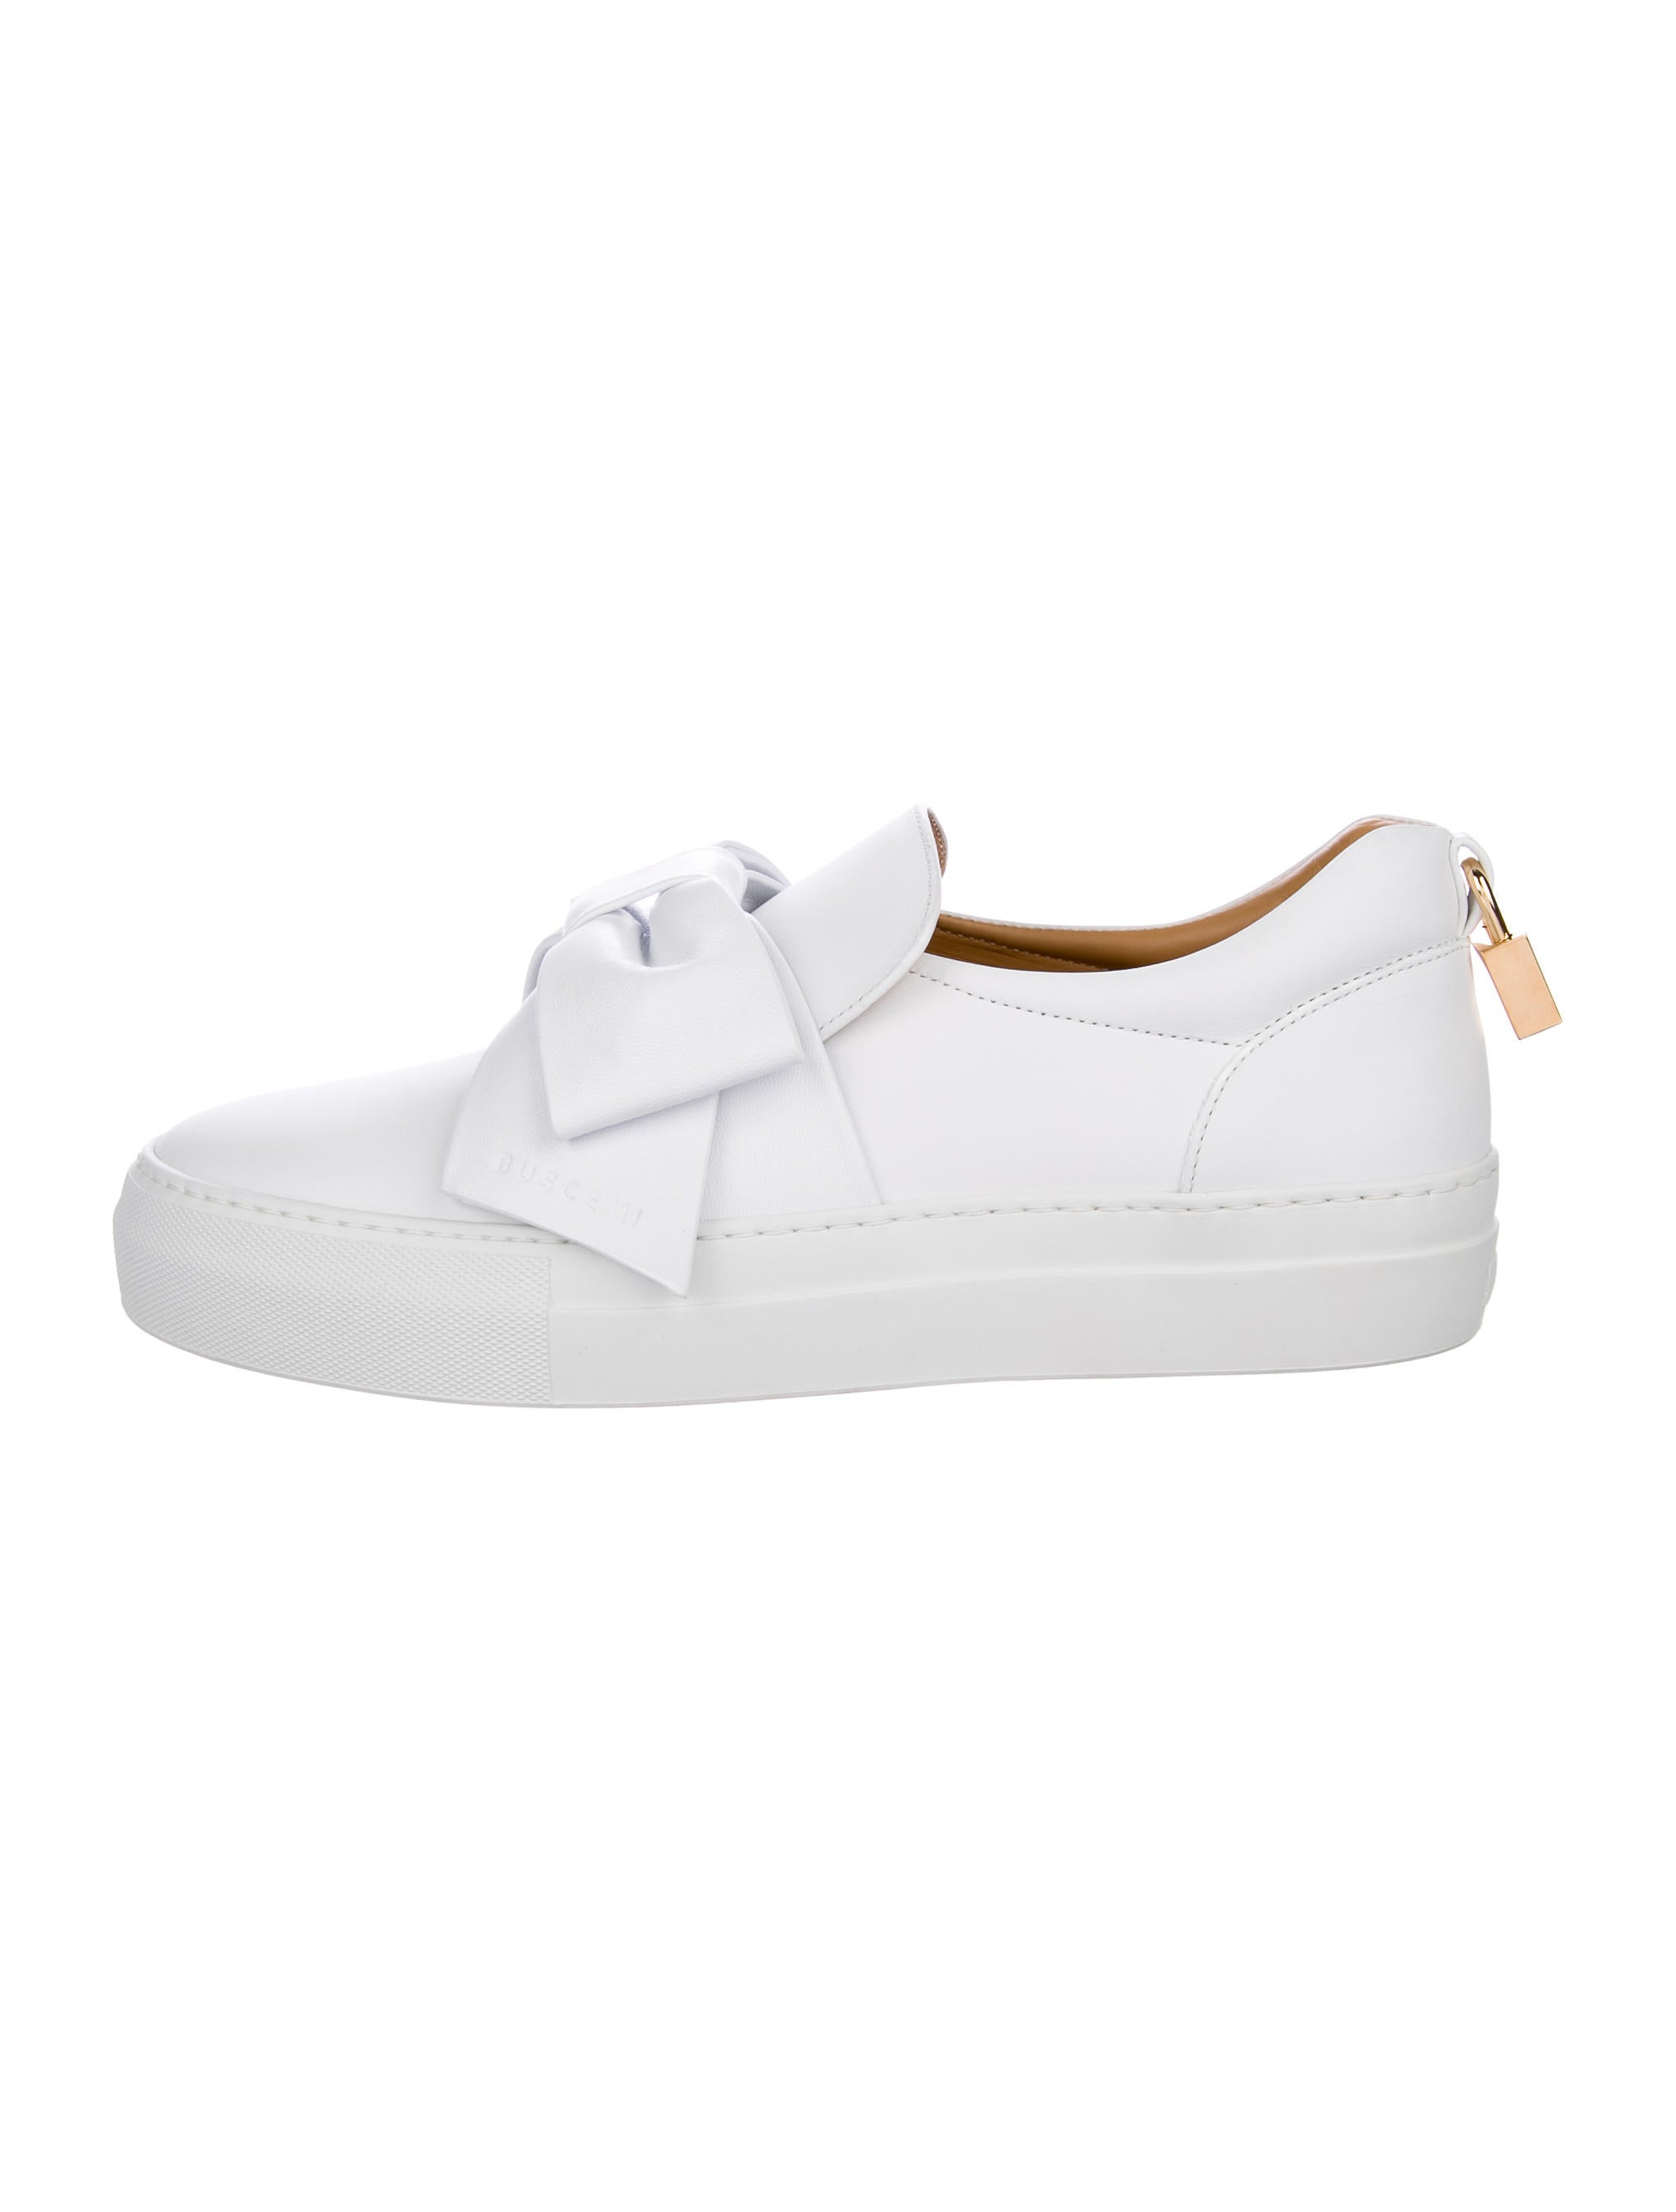 shopping online high quality popular sale online Buscemi 40MM Bow Sneakers w/ Tags xPLvCWDmv